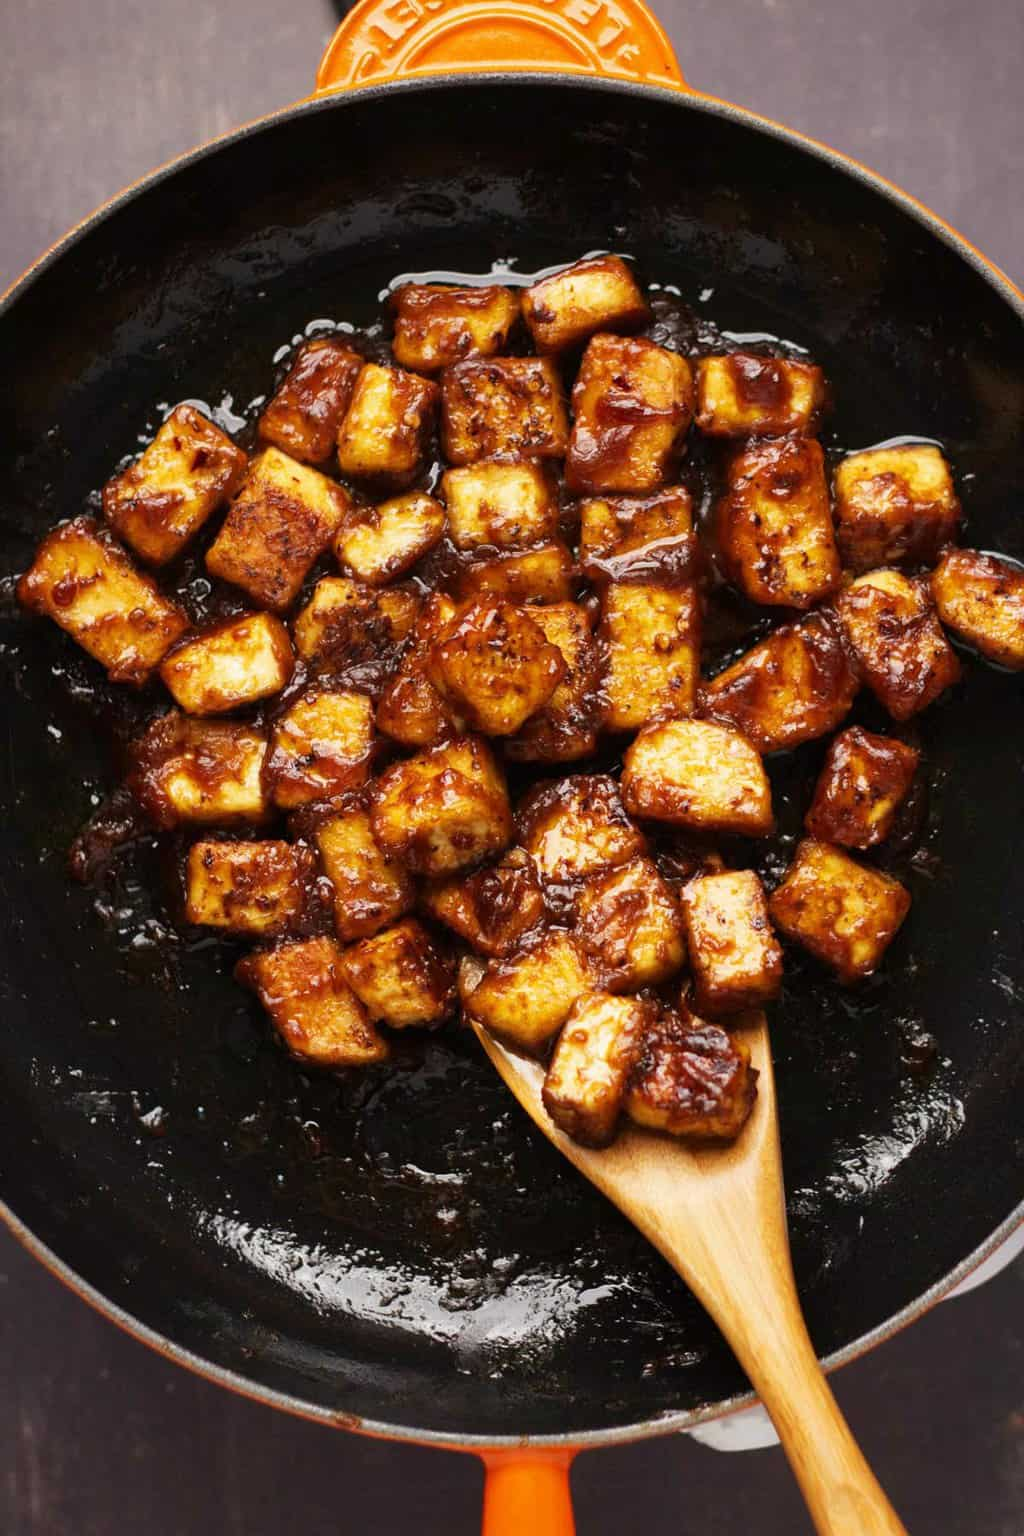 General Tso's tofu in a frying pan with a wooden spoon.